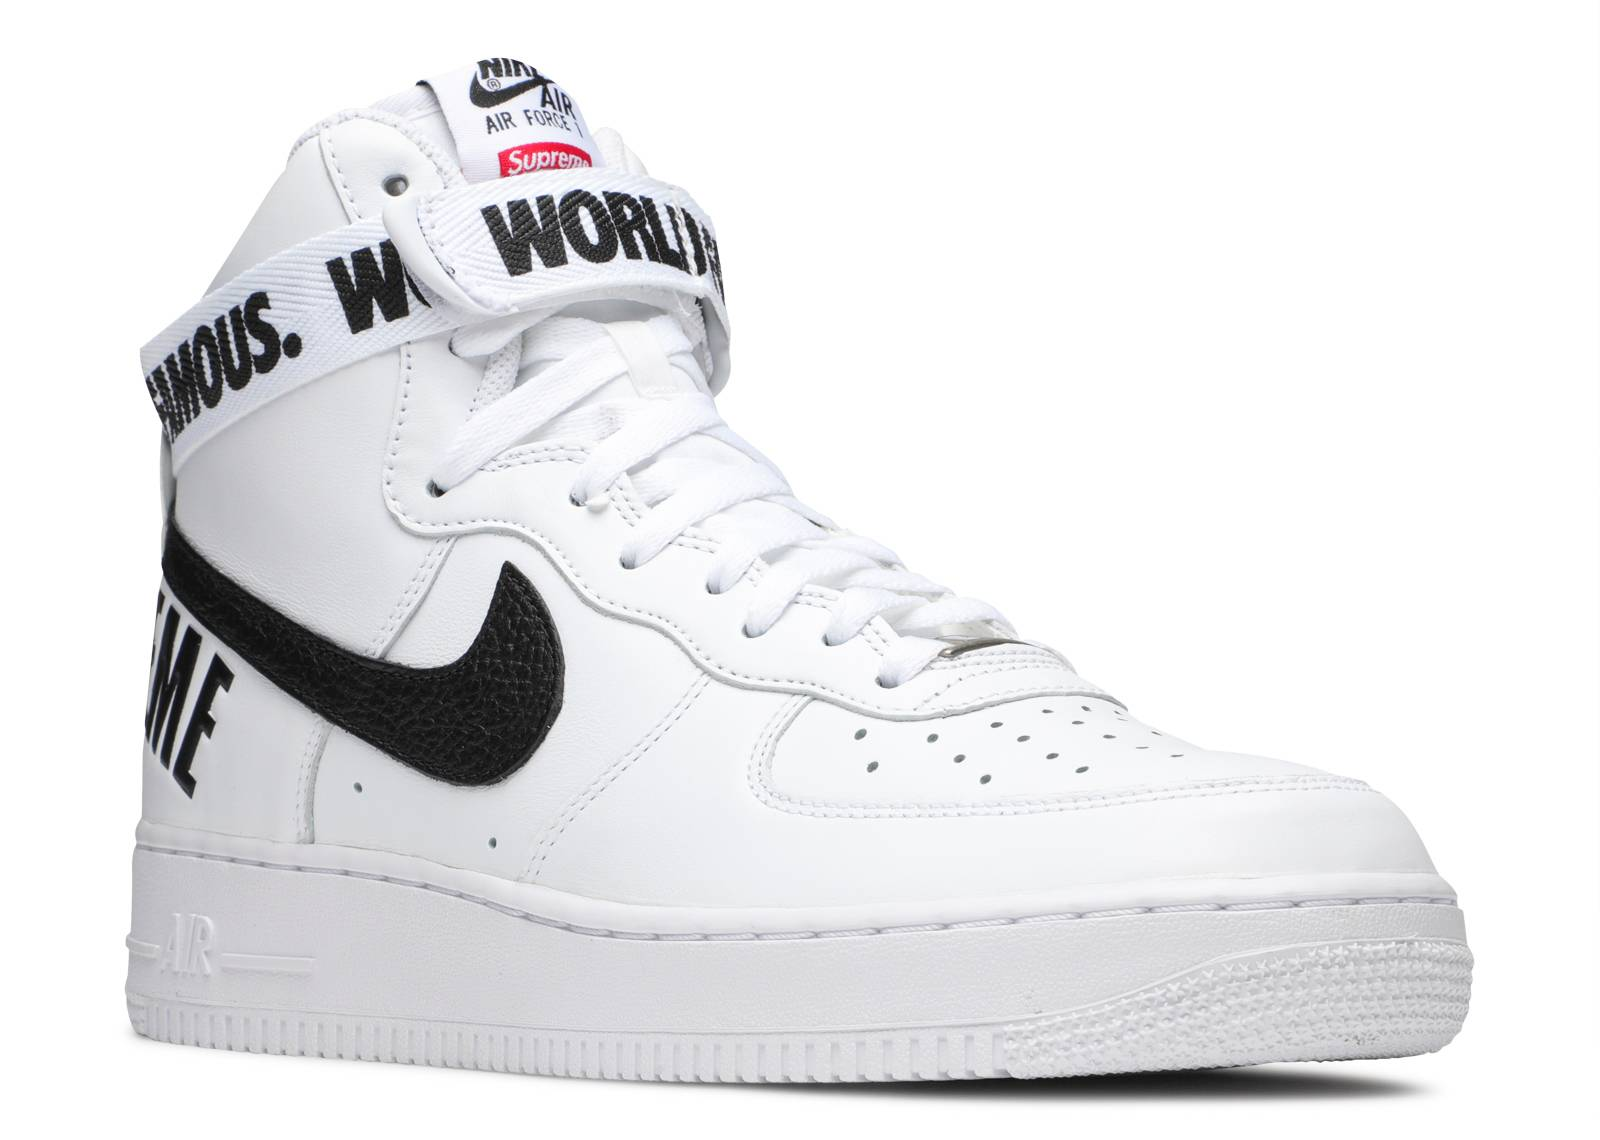 on sale 80f8e 16254 Air Force 1 High Supreme Sp